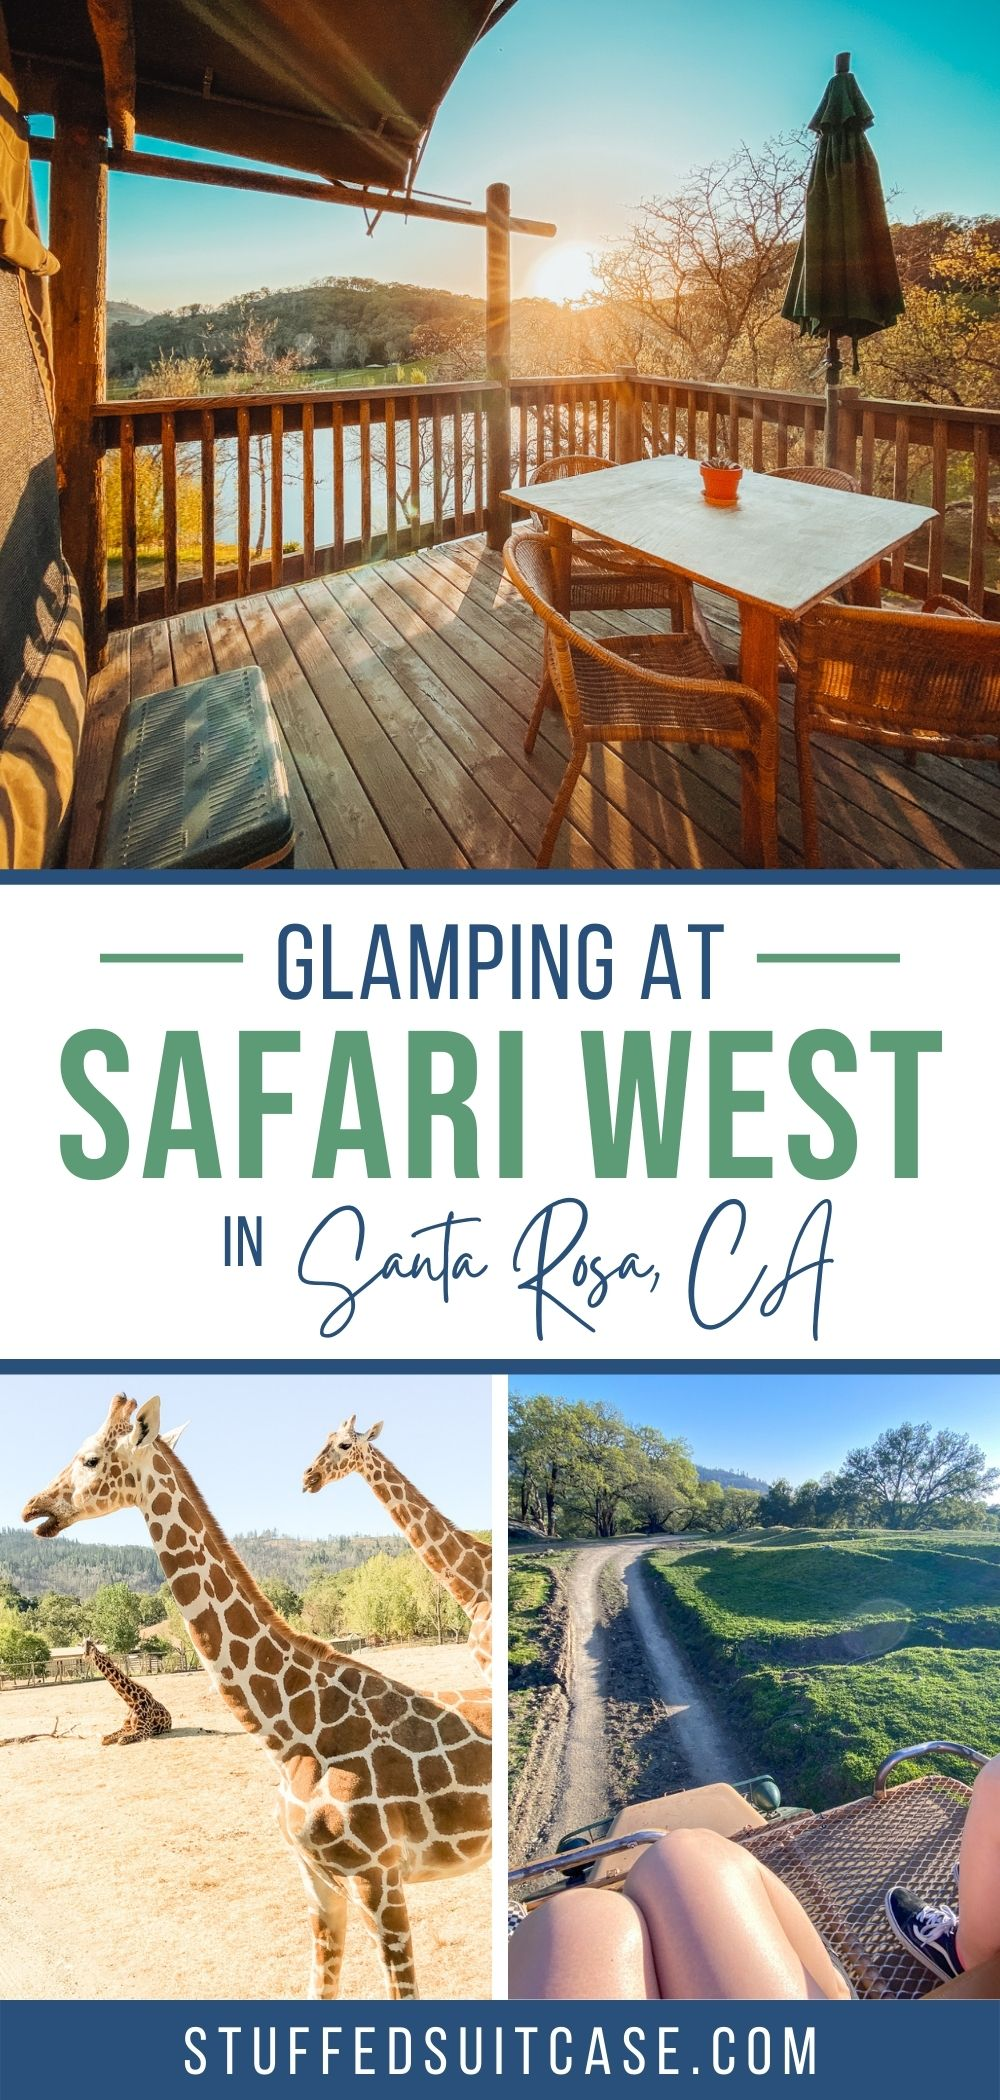 collage image glamping tent deck giraffes and landscape view of safari west